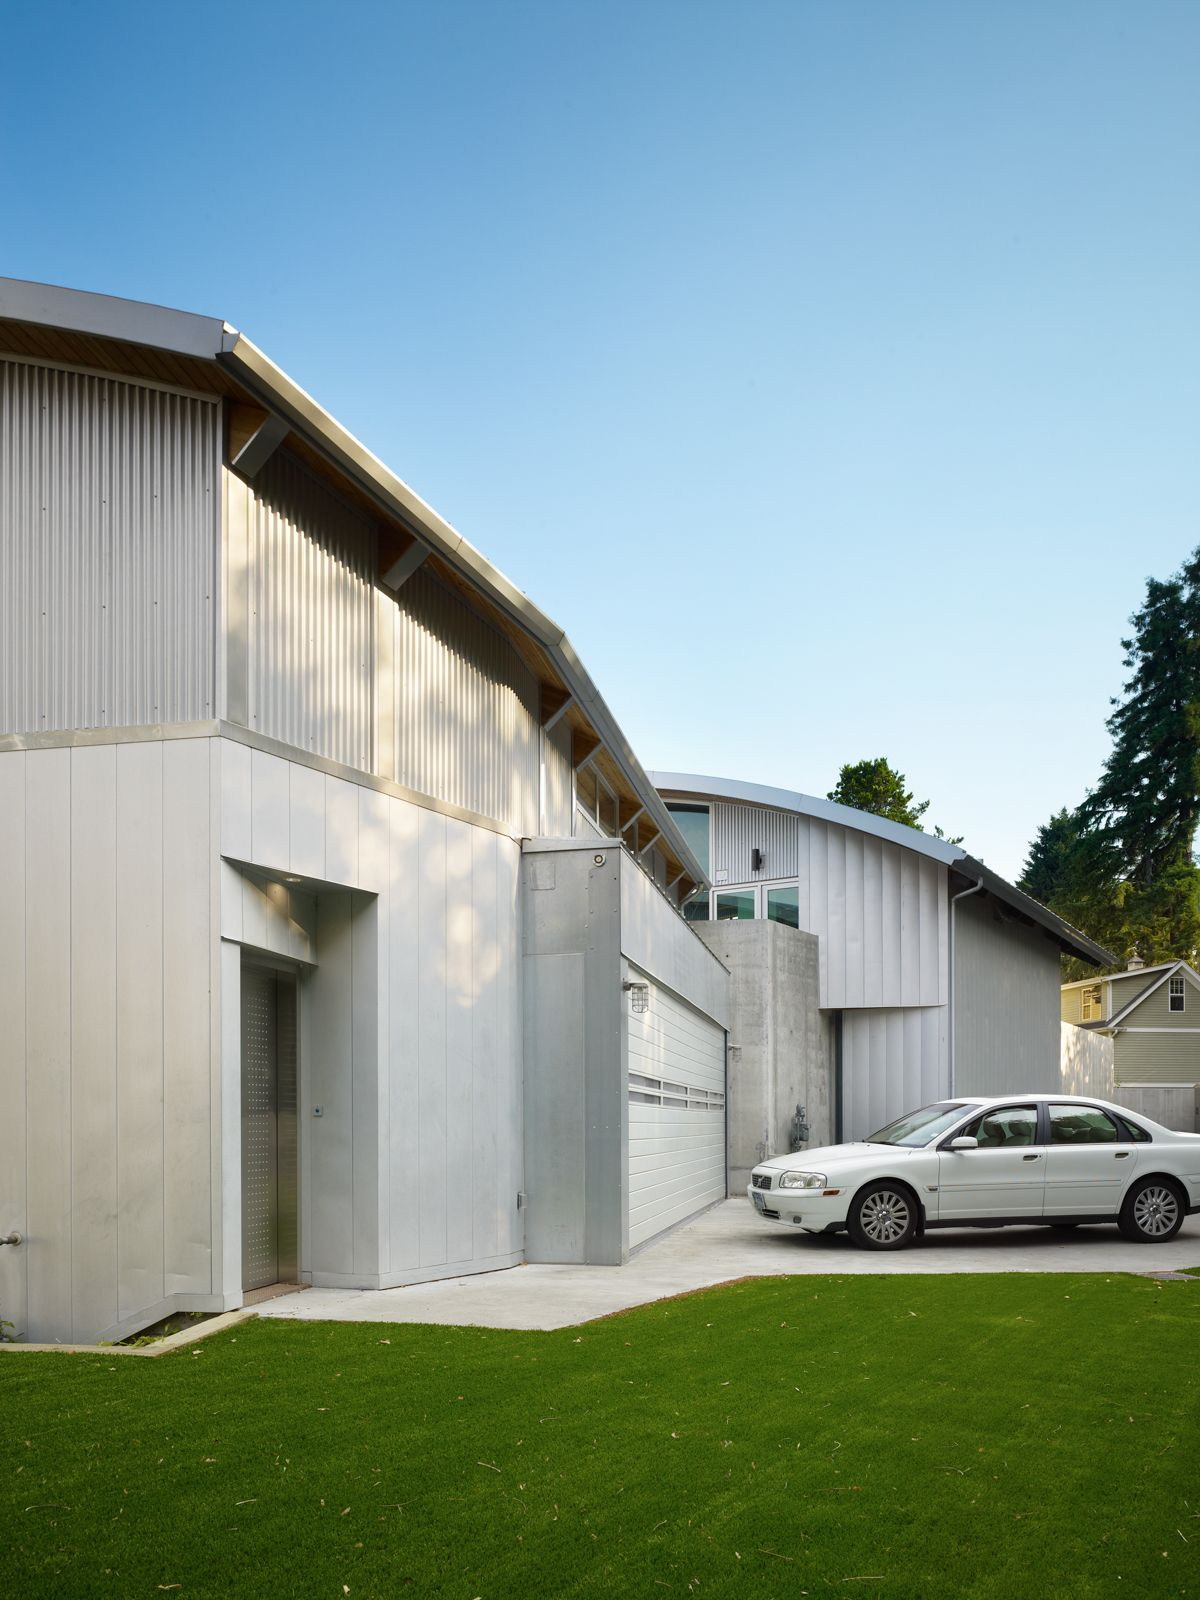 West Seattle Residence by Lawrence Architecture (4)